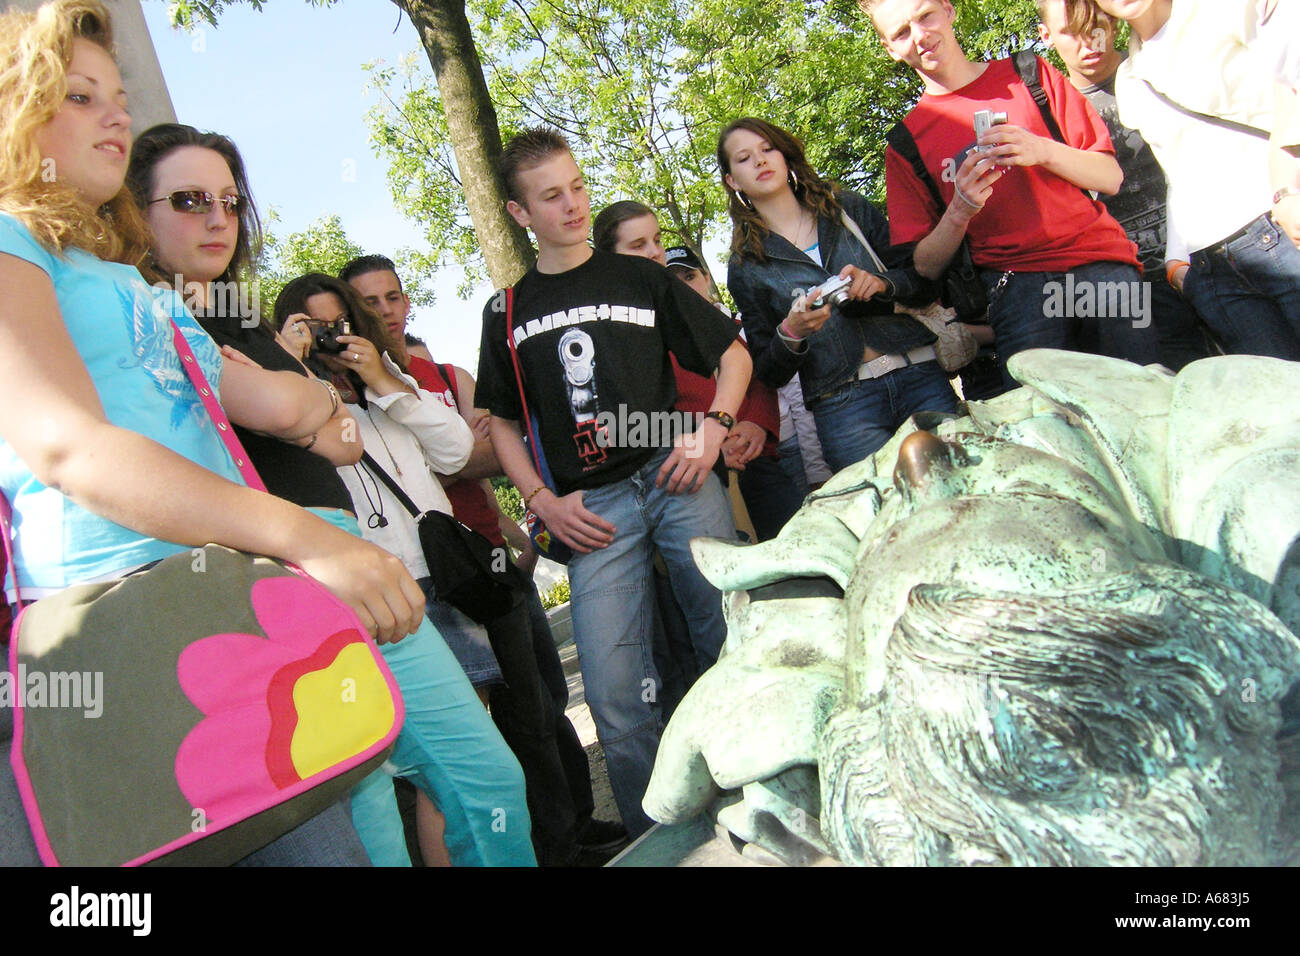 Group of teenage schoolchildren visiting Pere Lachaise cemetery Paris France - Stock Image